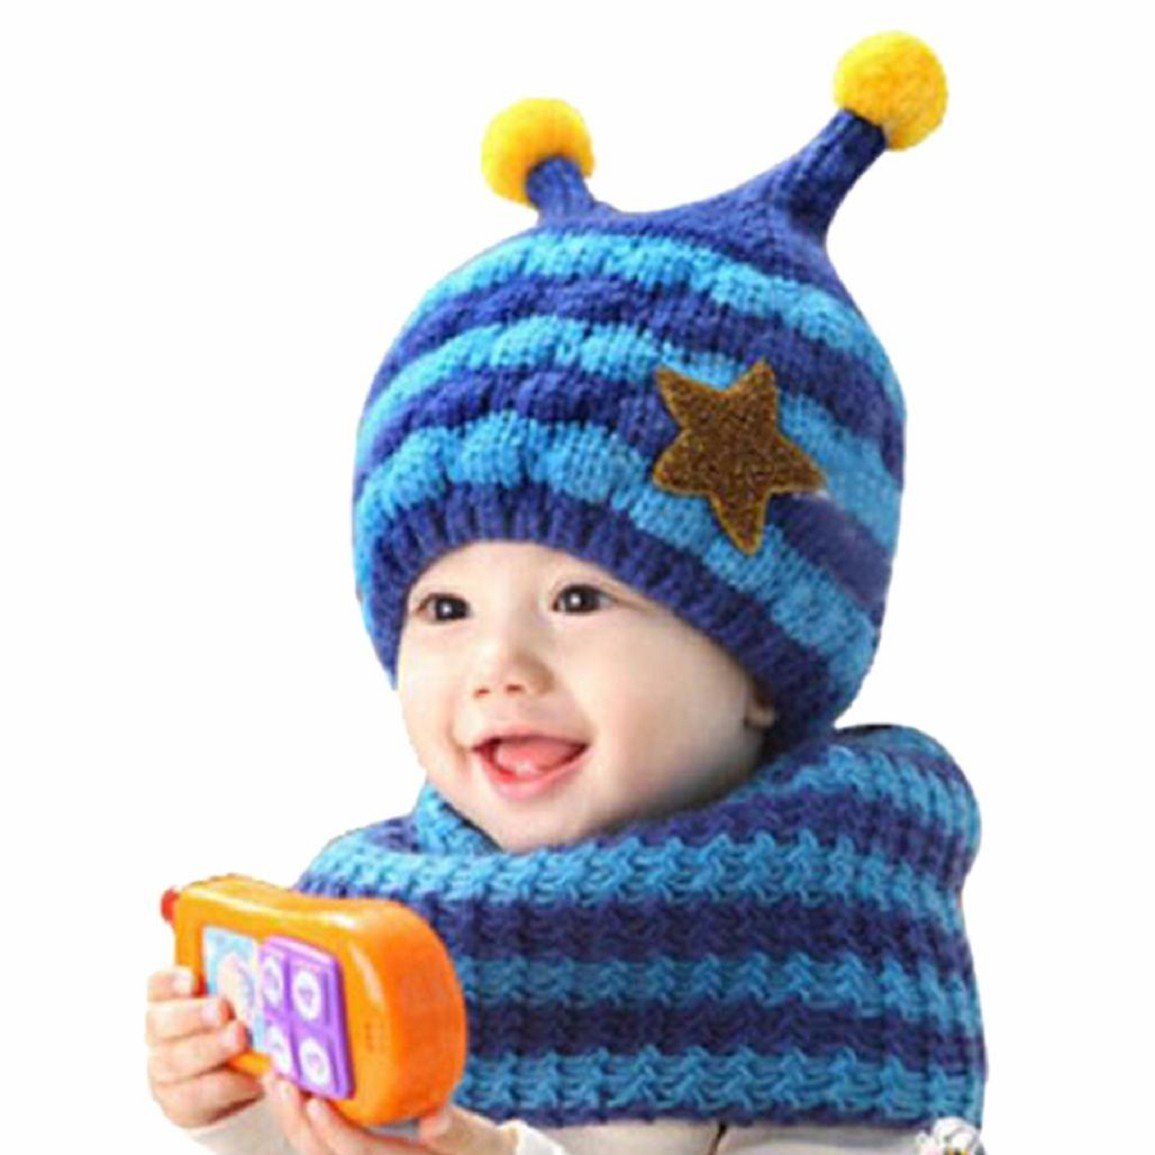 Changeshopping Cute Winter Baby Wool Hat Hooded Scarf Earflap Knit Cap Toddler Changeshopping 5464